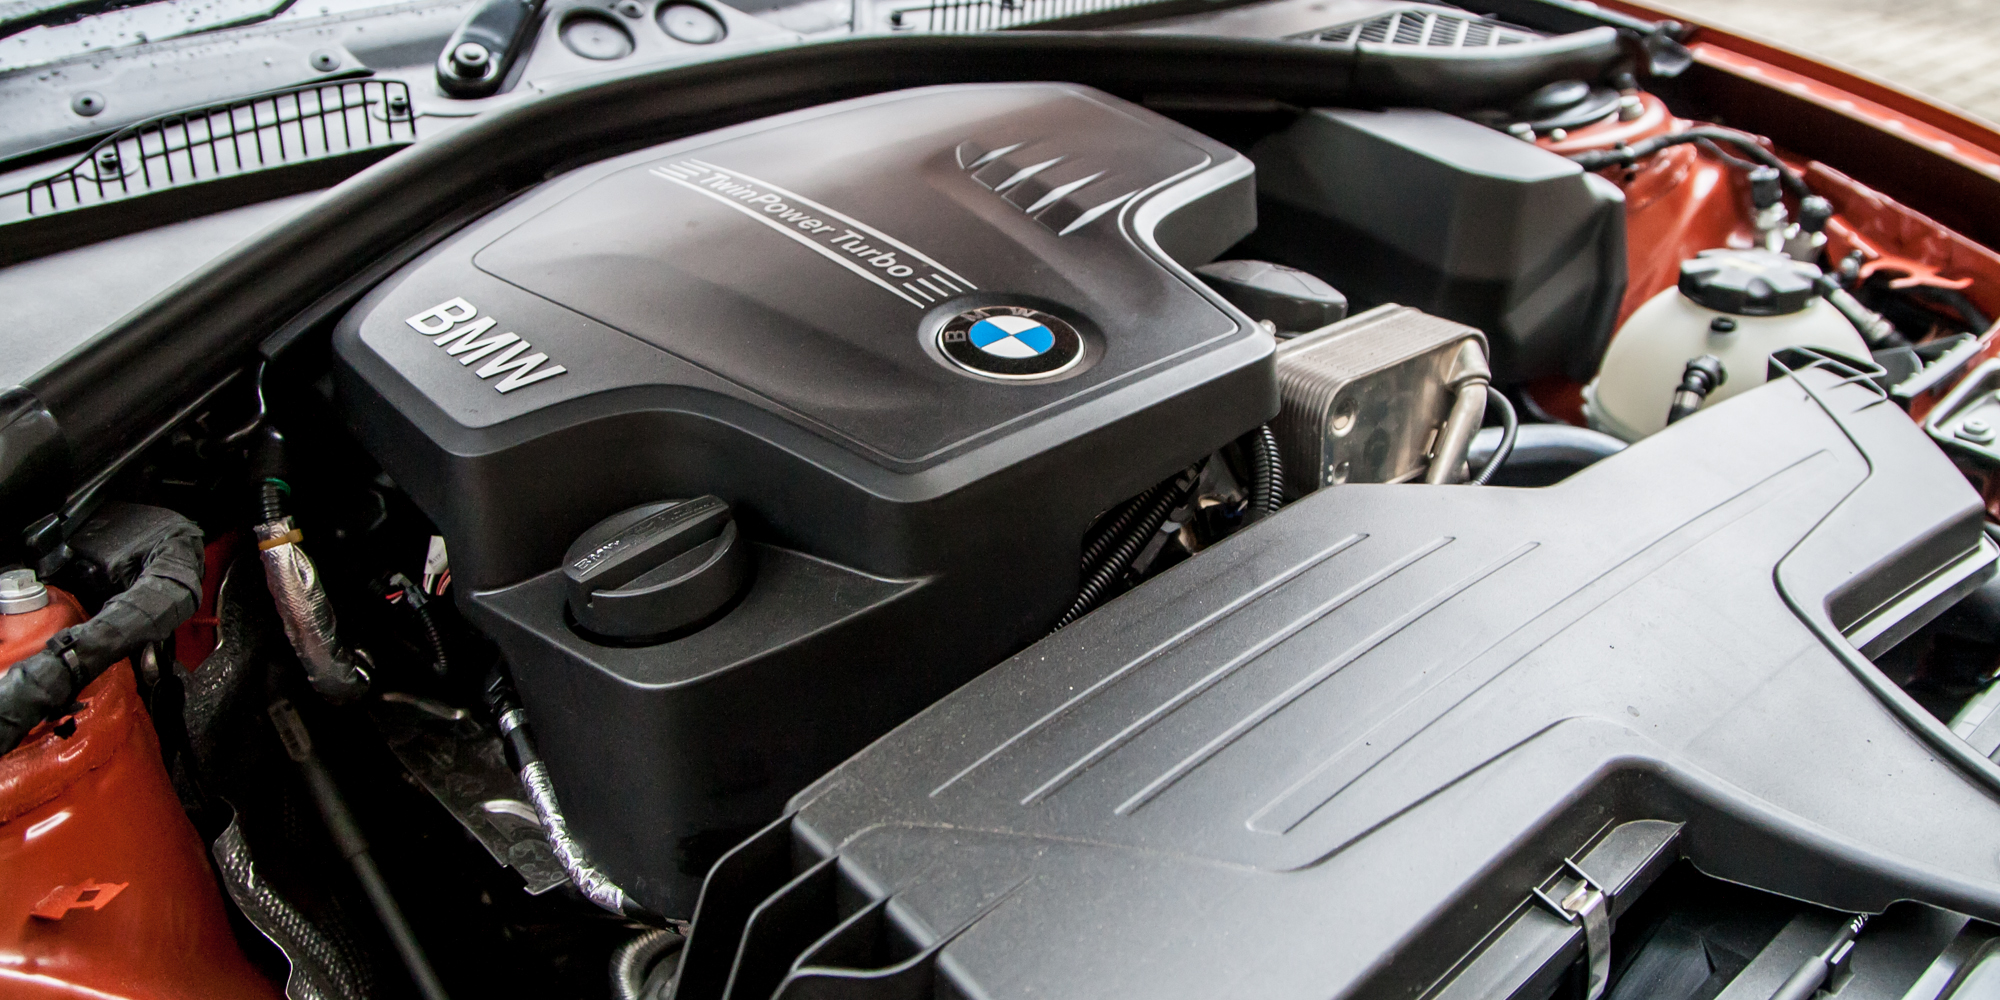 2015 BMW 125i Turbocharged 2.0-Liter Engine